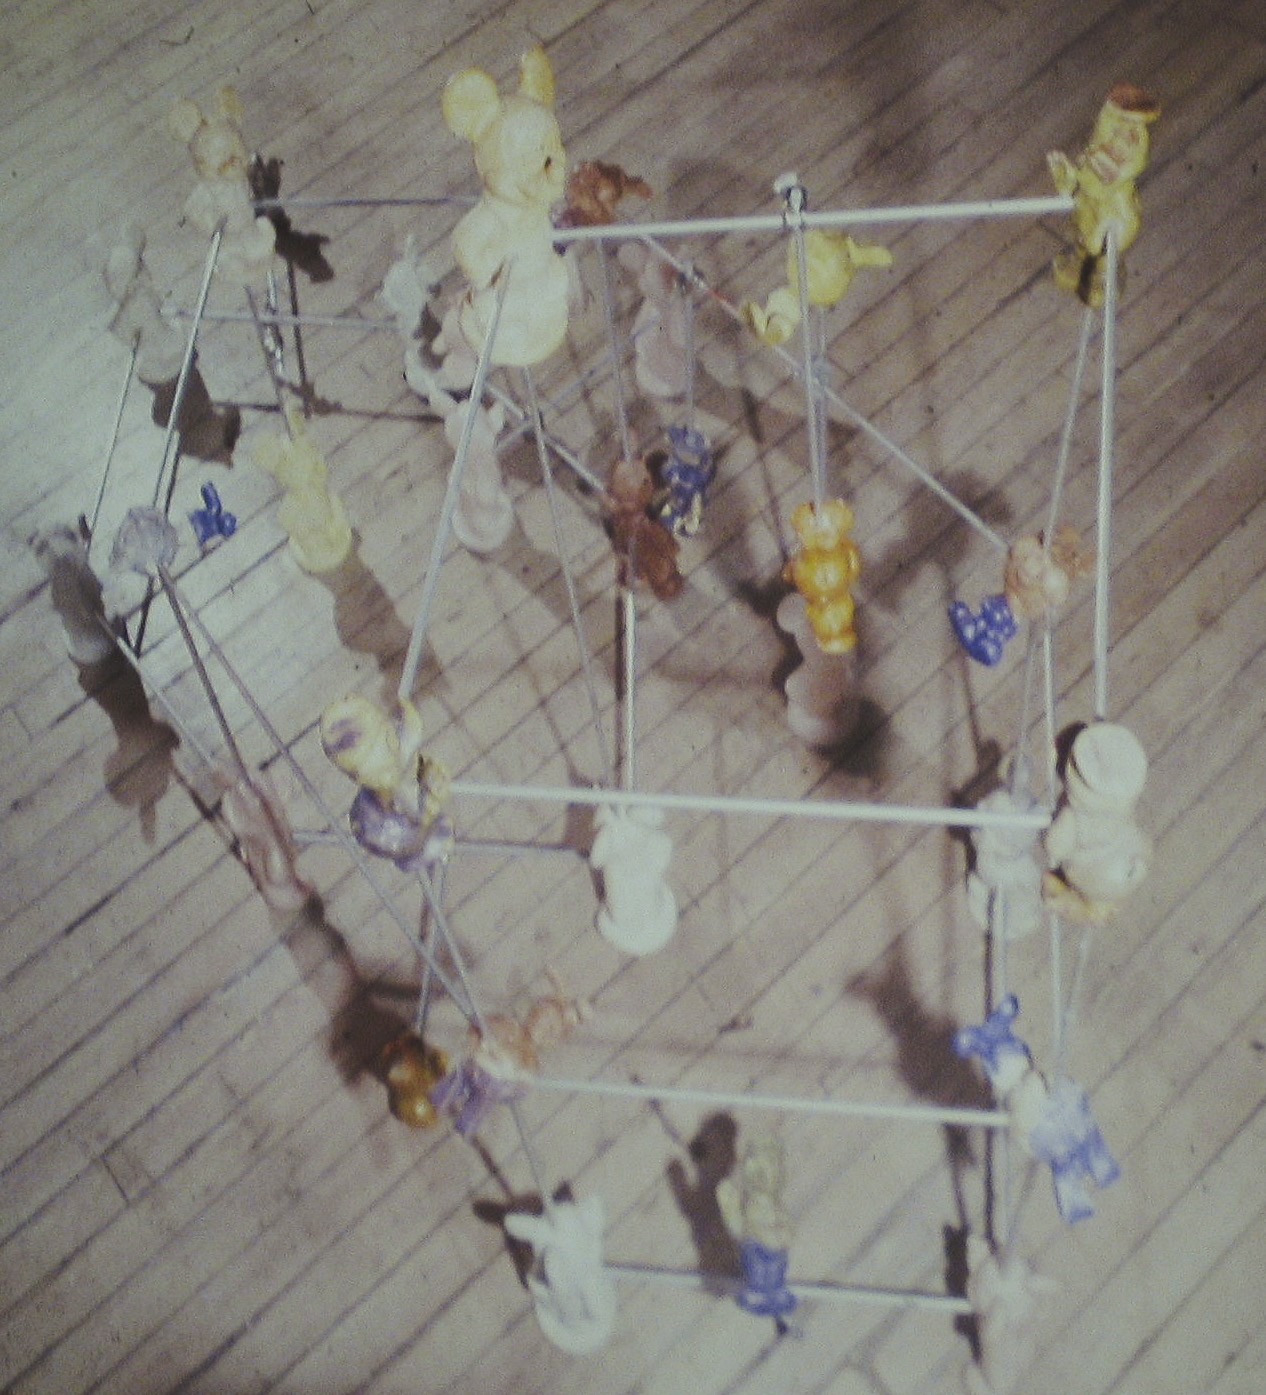 Dennis Oppenheim - Armatures for Projection: The Early Factory Projects. Curated by Raul Zamudio. White Box, 2004 (34)